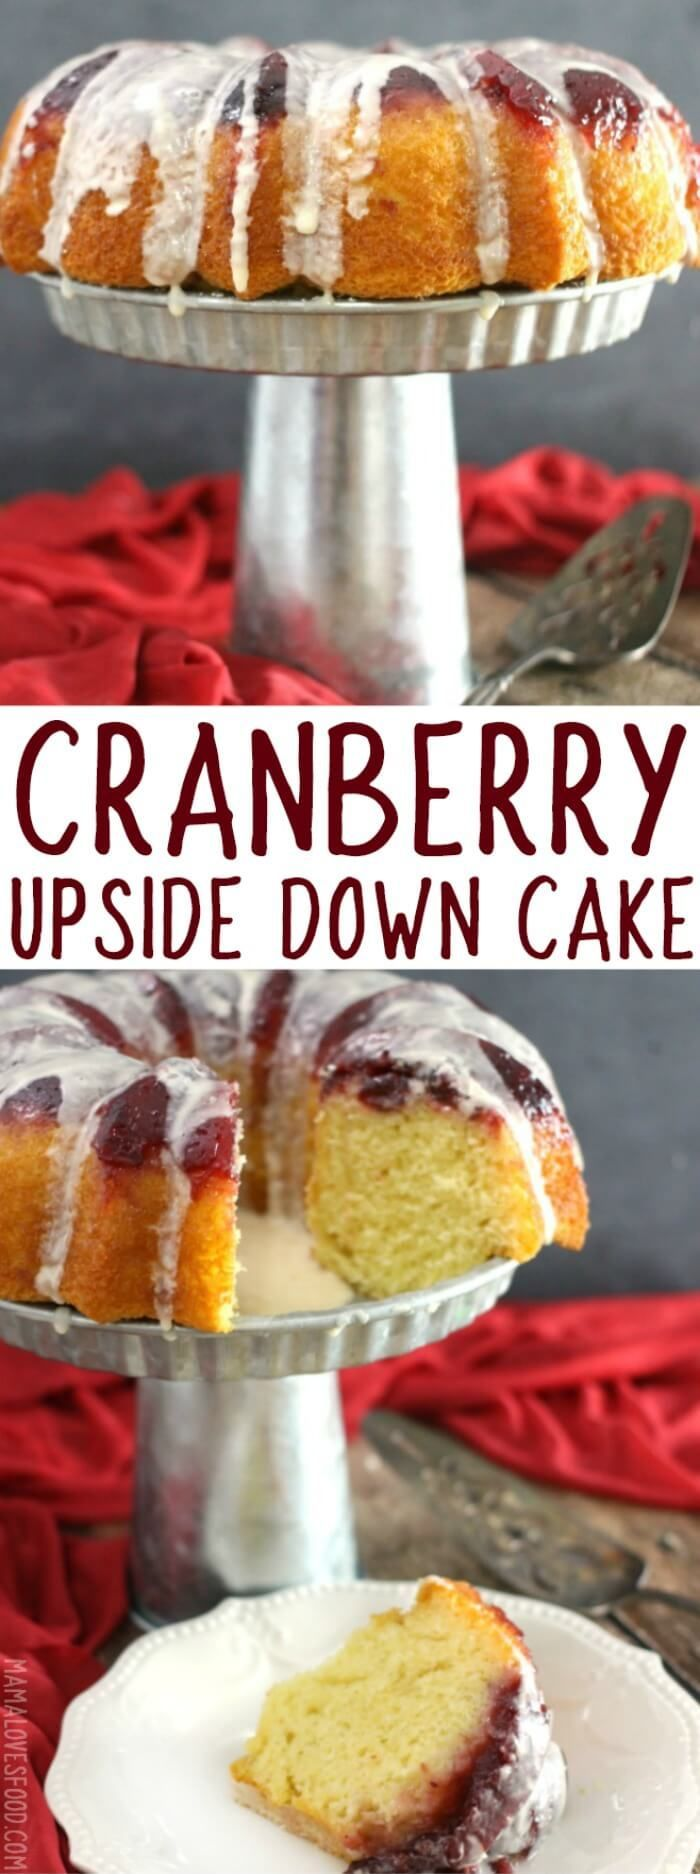 LOVED THIS ONE!  AND SO PRETTY!  - This Easy Cranberry Upside Down Cake is only two basic ingredients and is a beautiful and simple recipe for your holiday dinner menu.